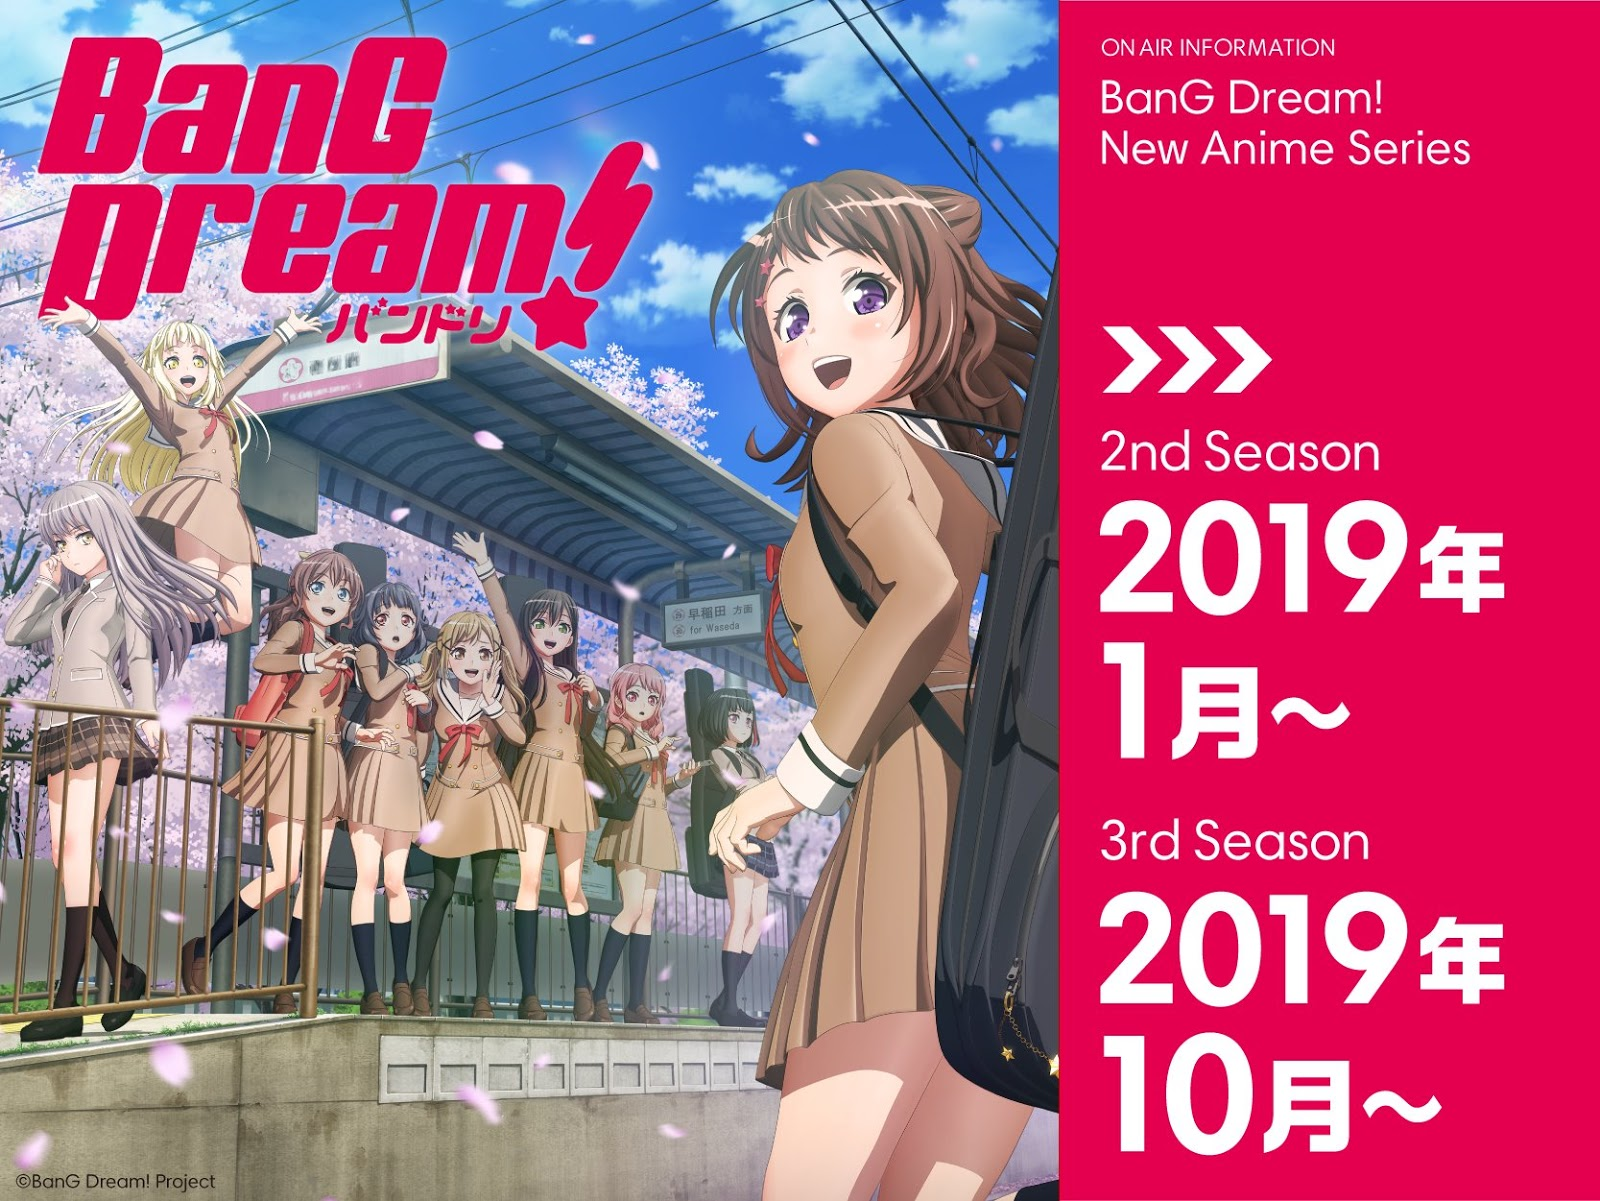 El anime BanG! Dream anuncia segunda y tercera temporada